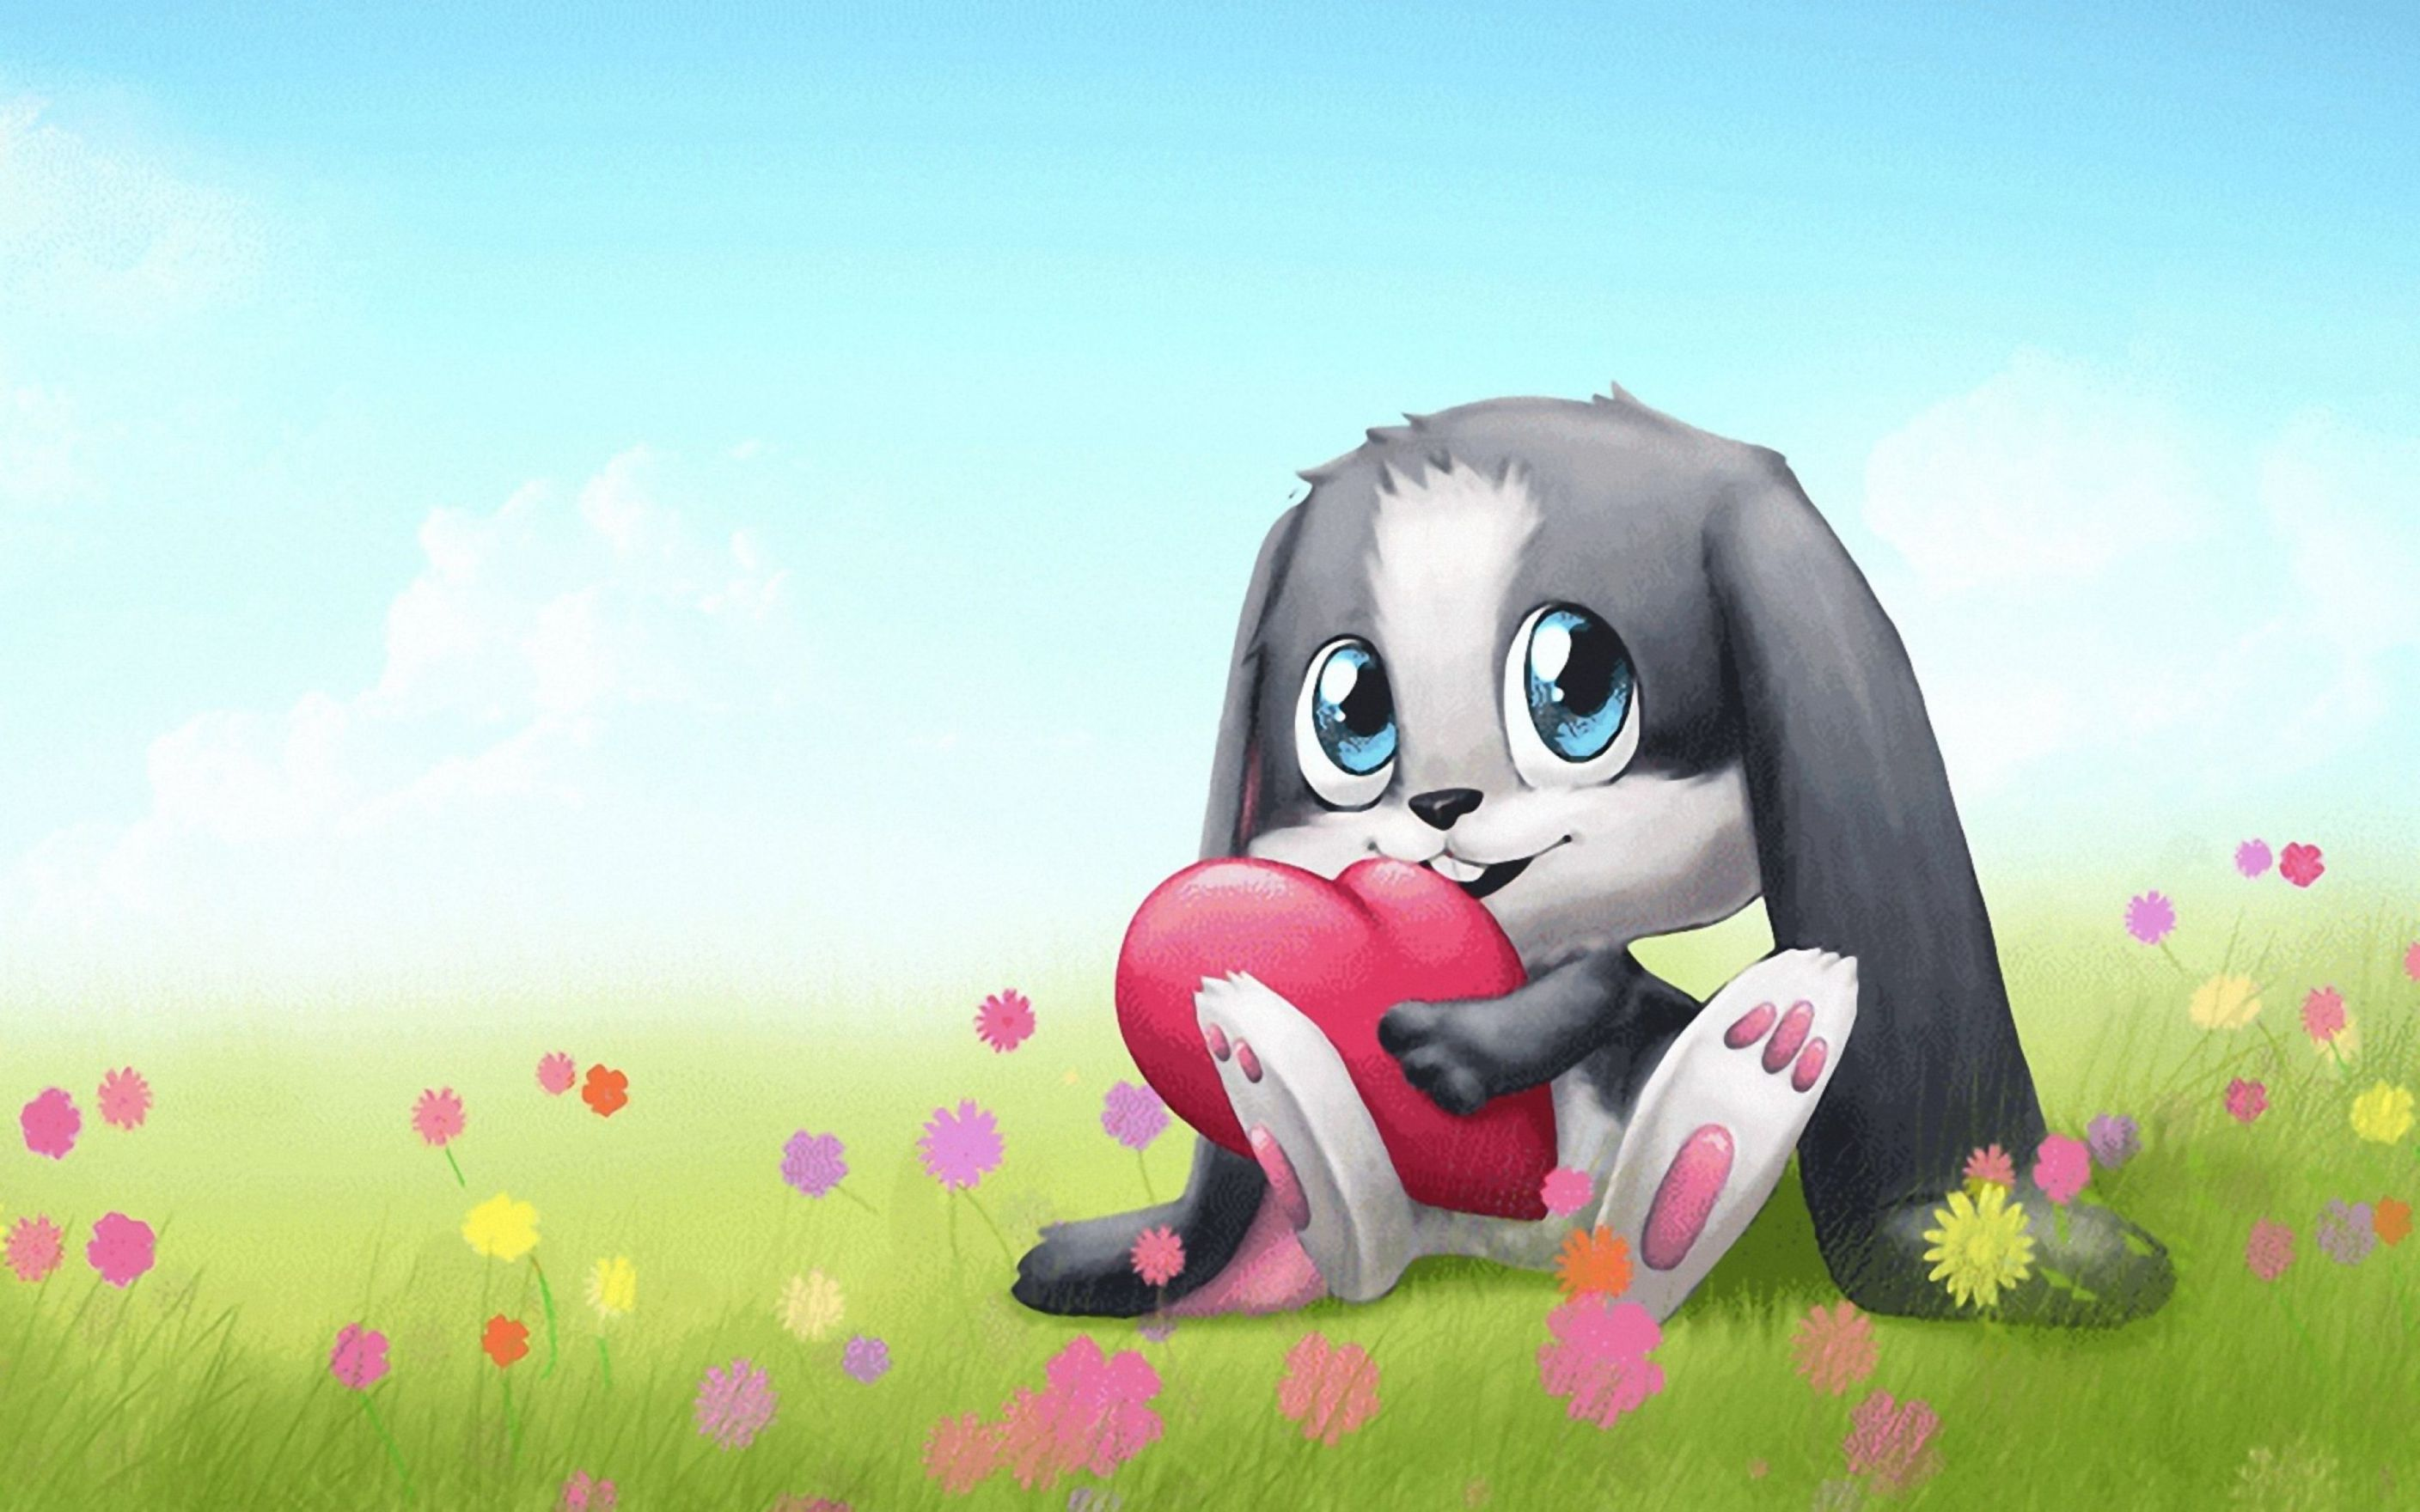 Download free HD Cute Bunny Cartoon HD for Windows 8 Wallpaper, image